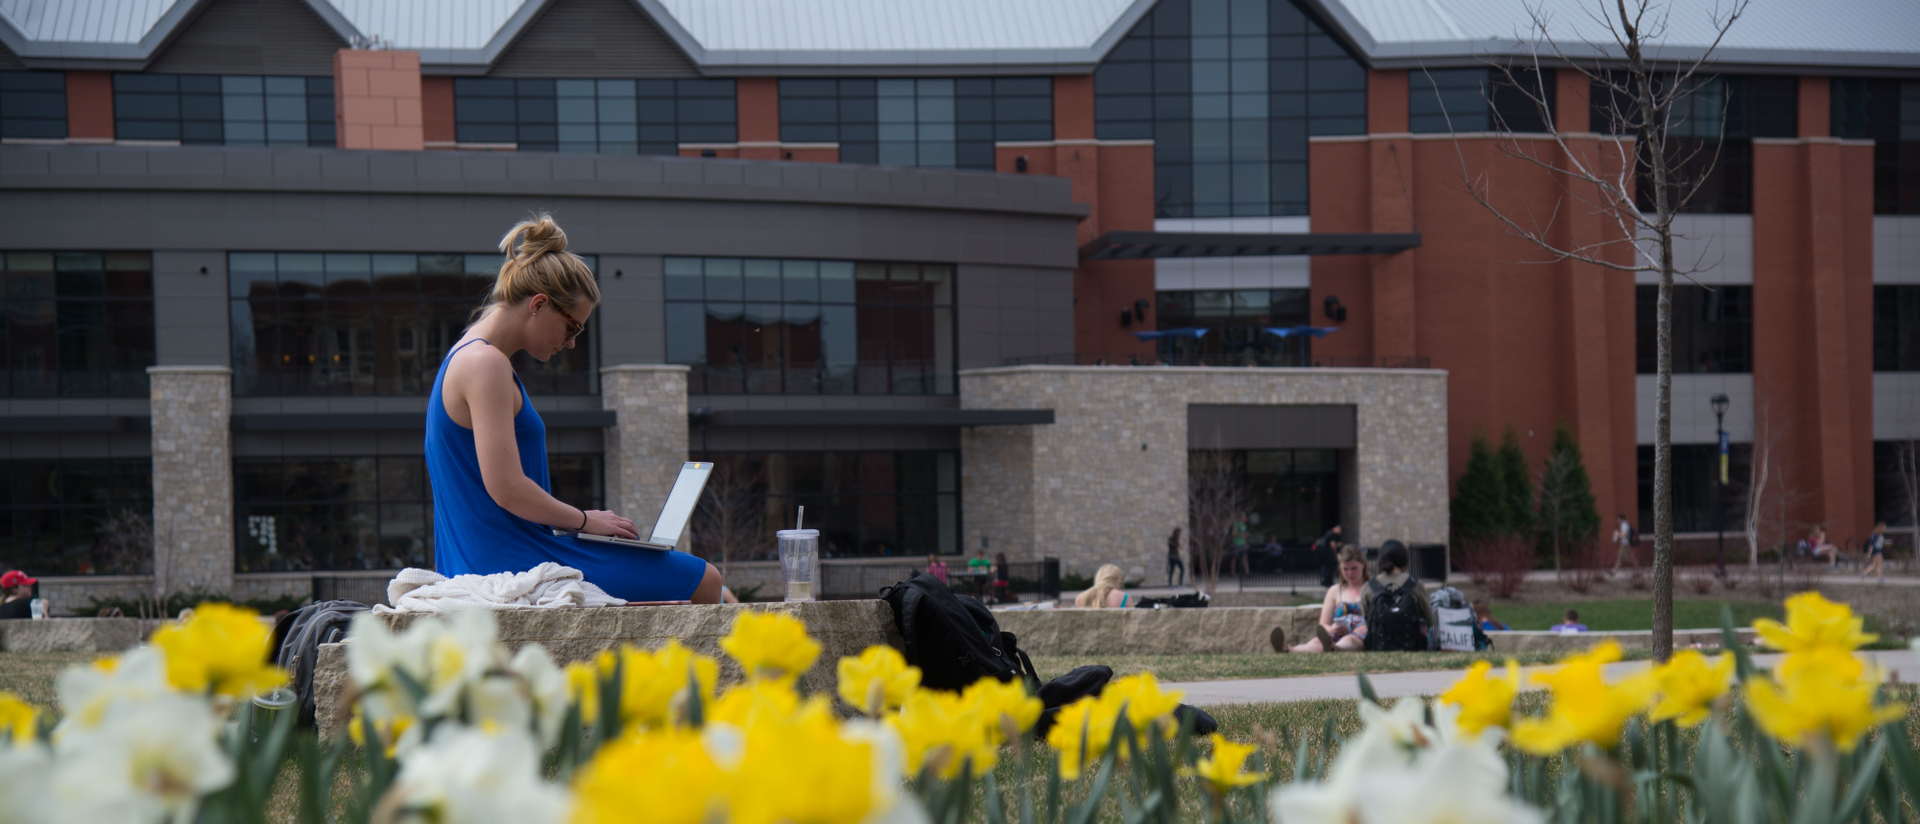 Student works outside on laptop